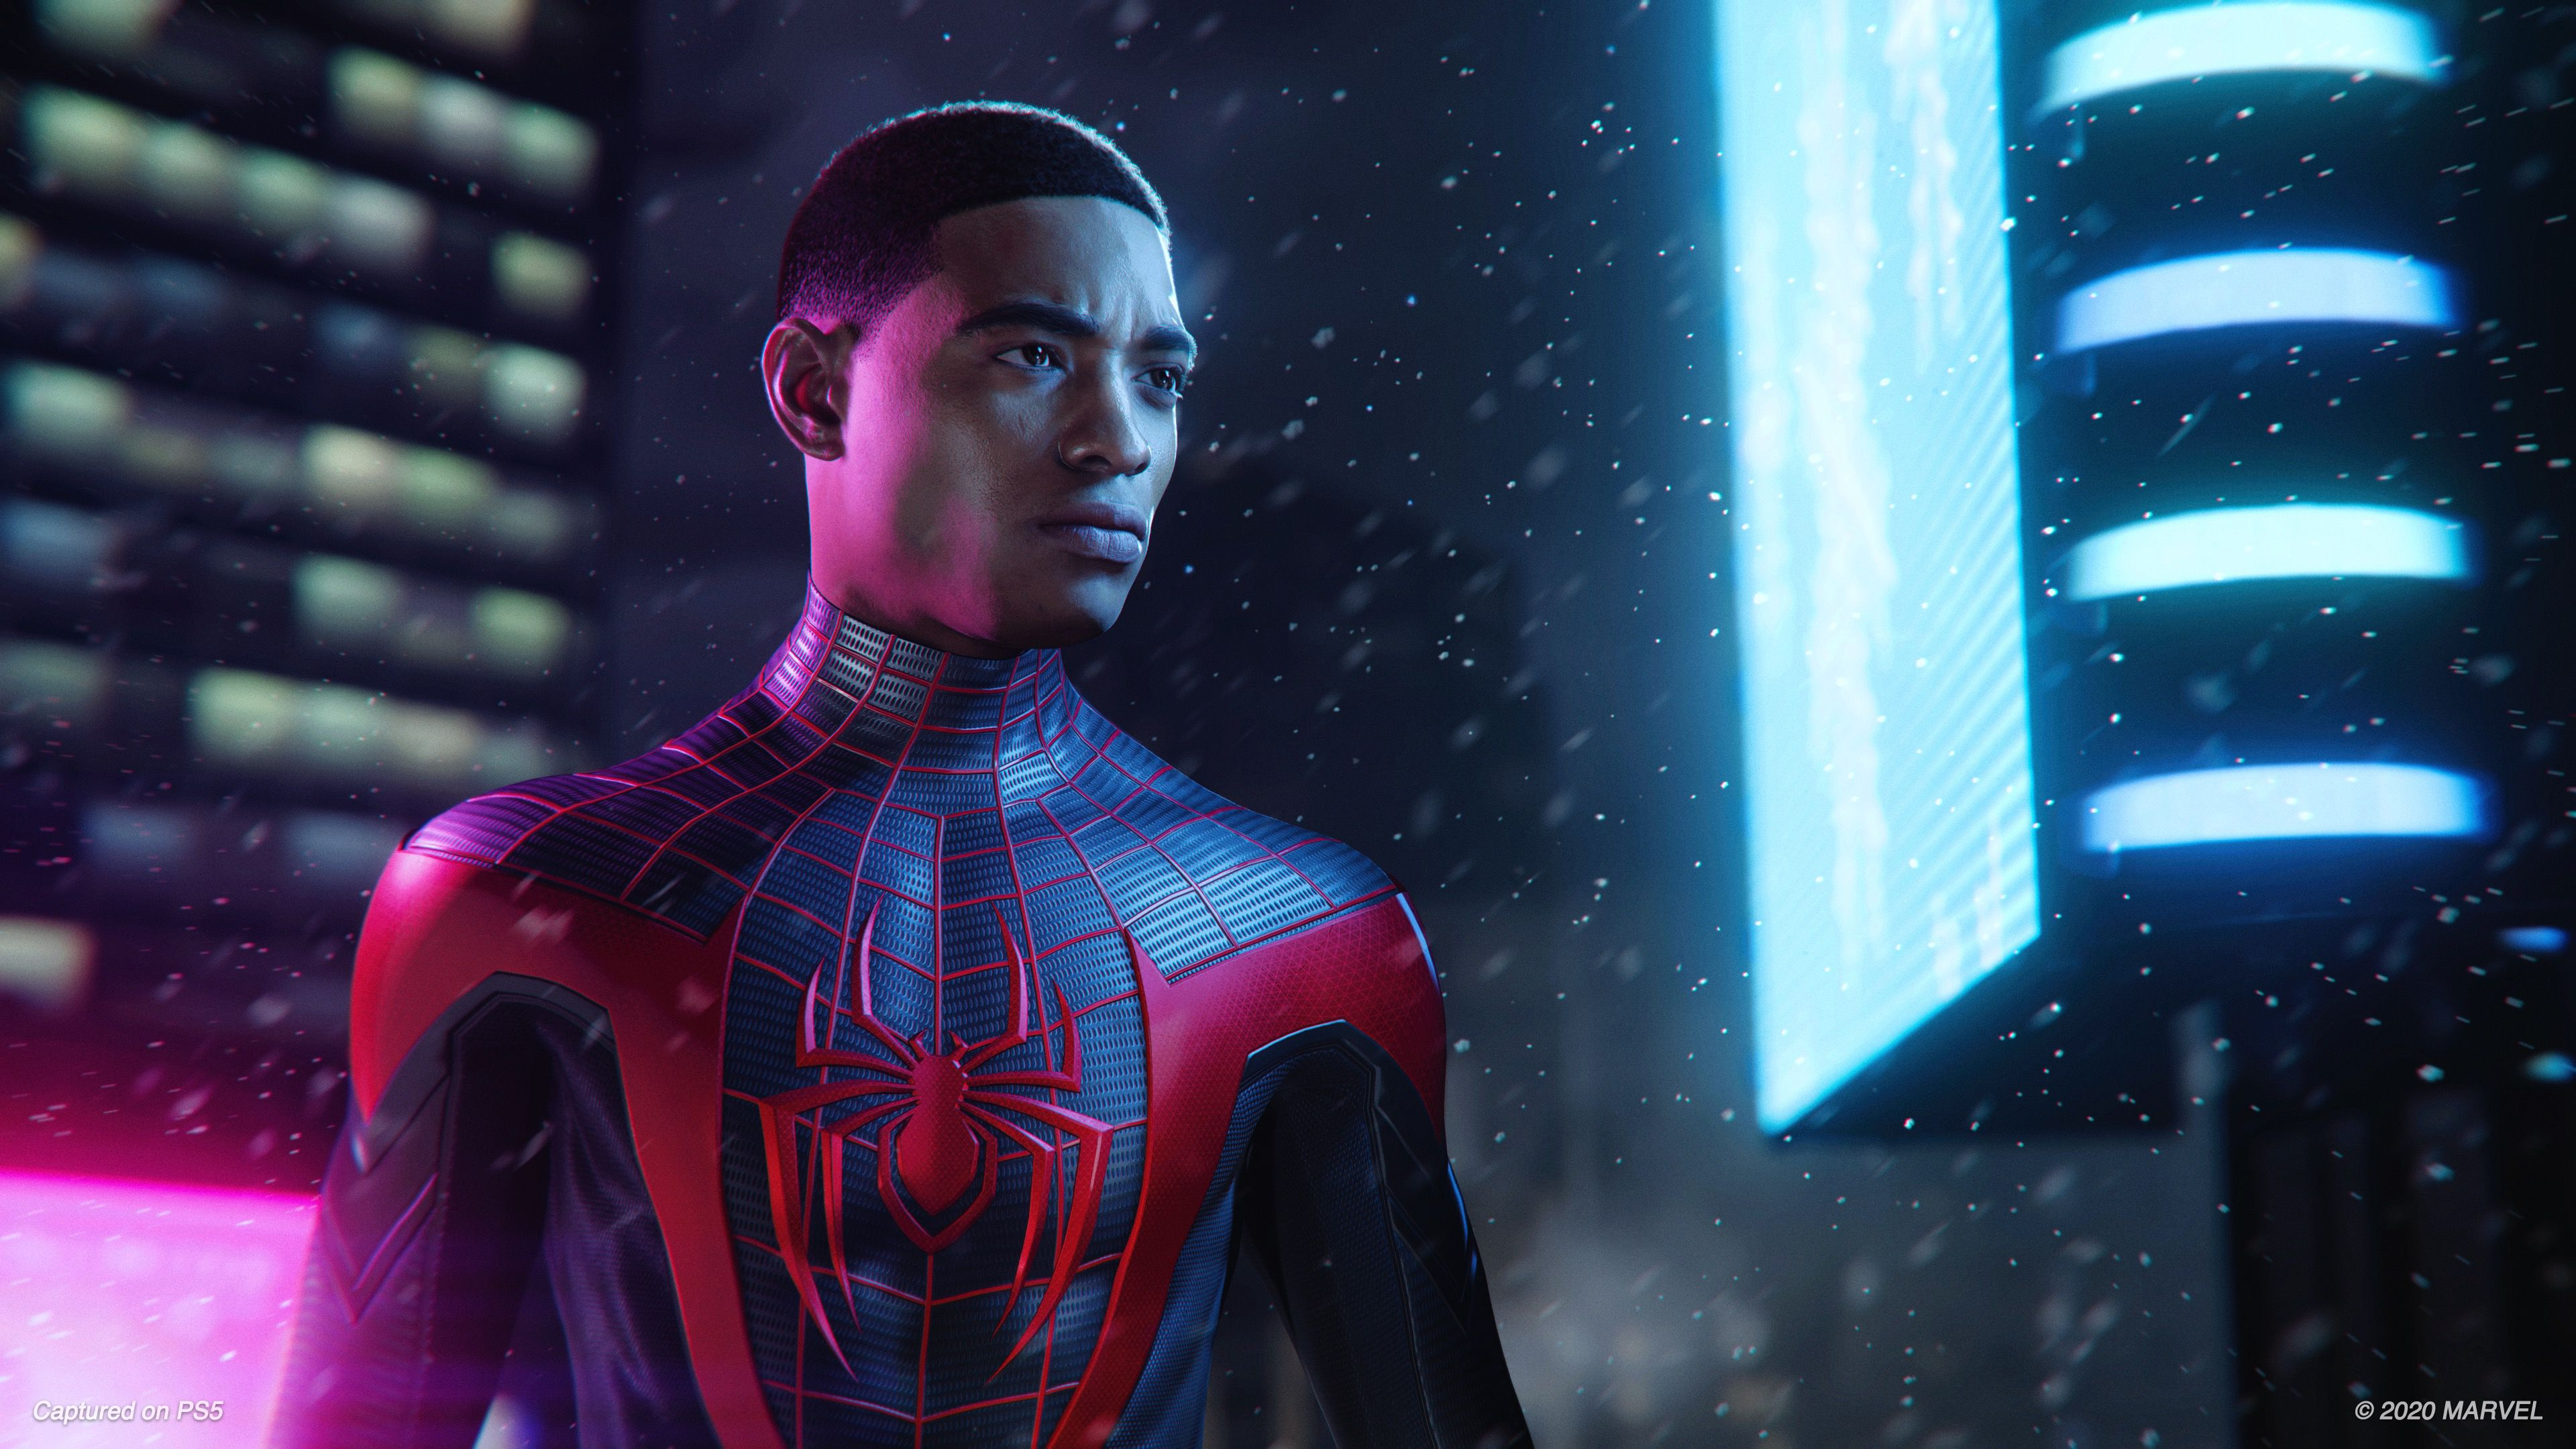 Why I'm Excited to Play Spider-Man: Miles Morales